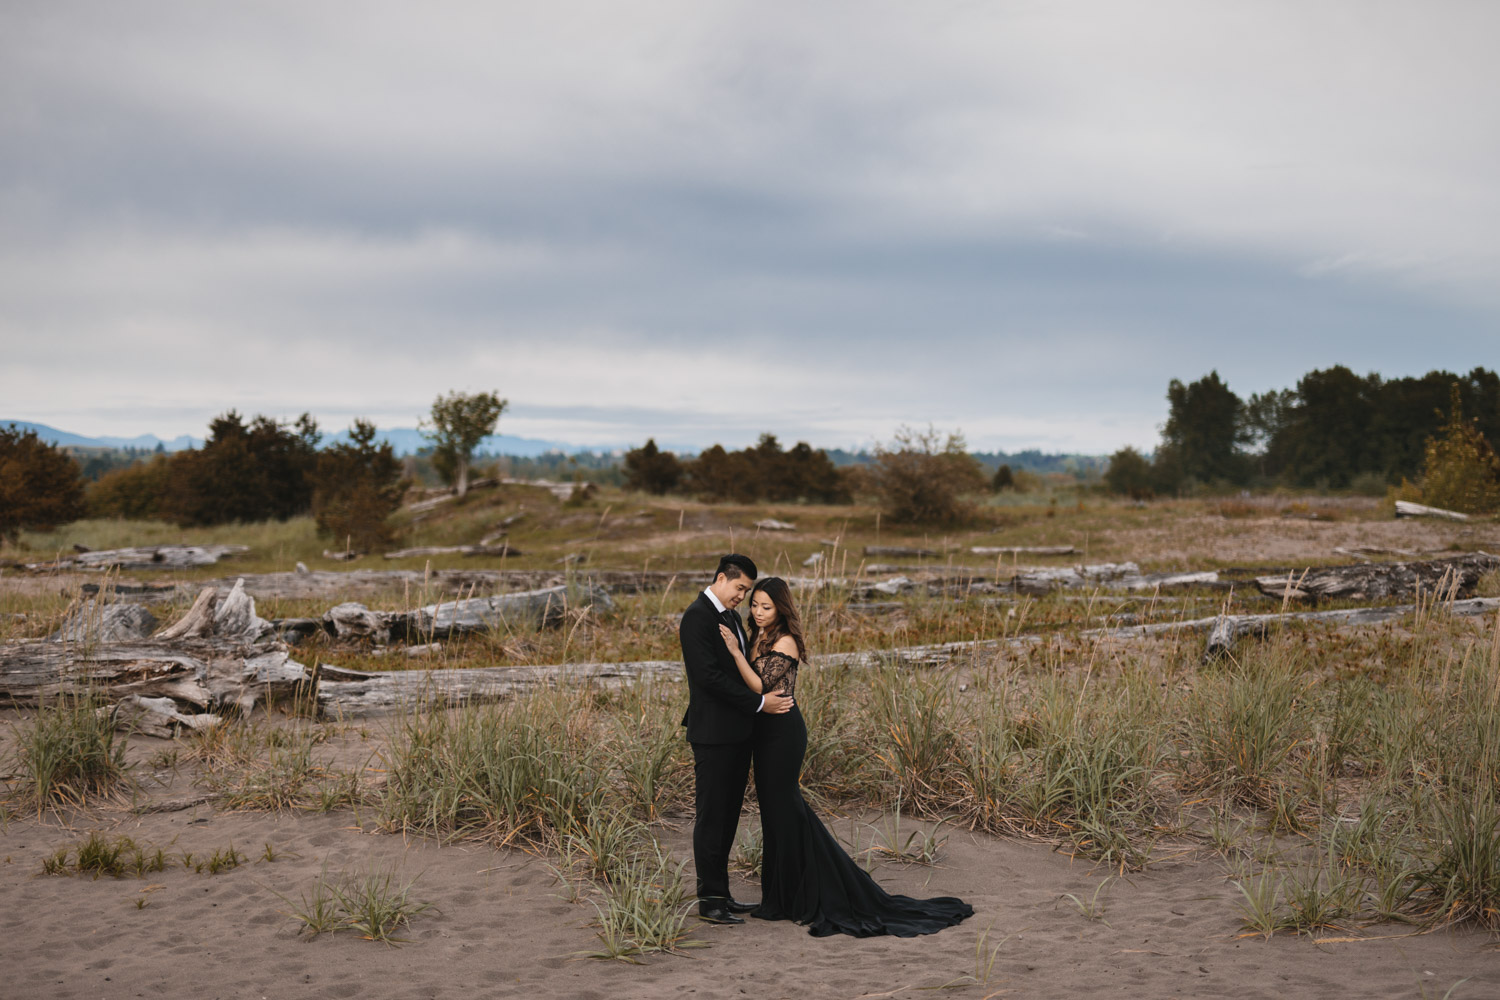 vince chan engagement photography at iona beach park